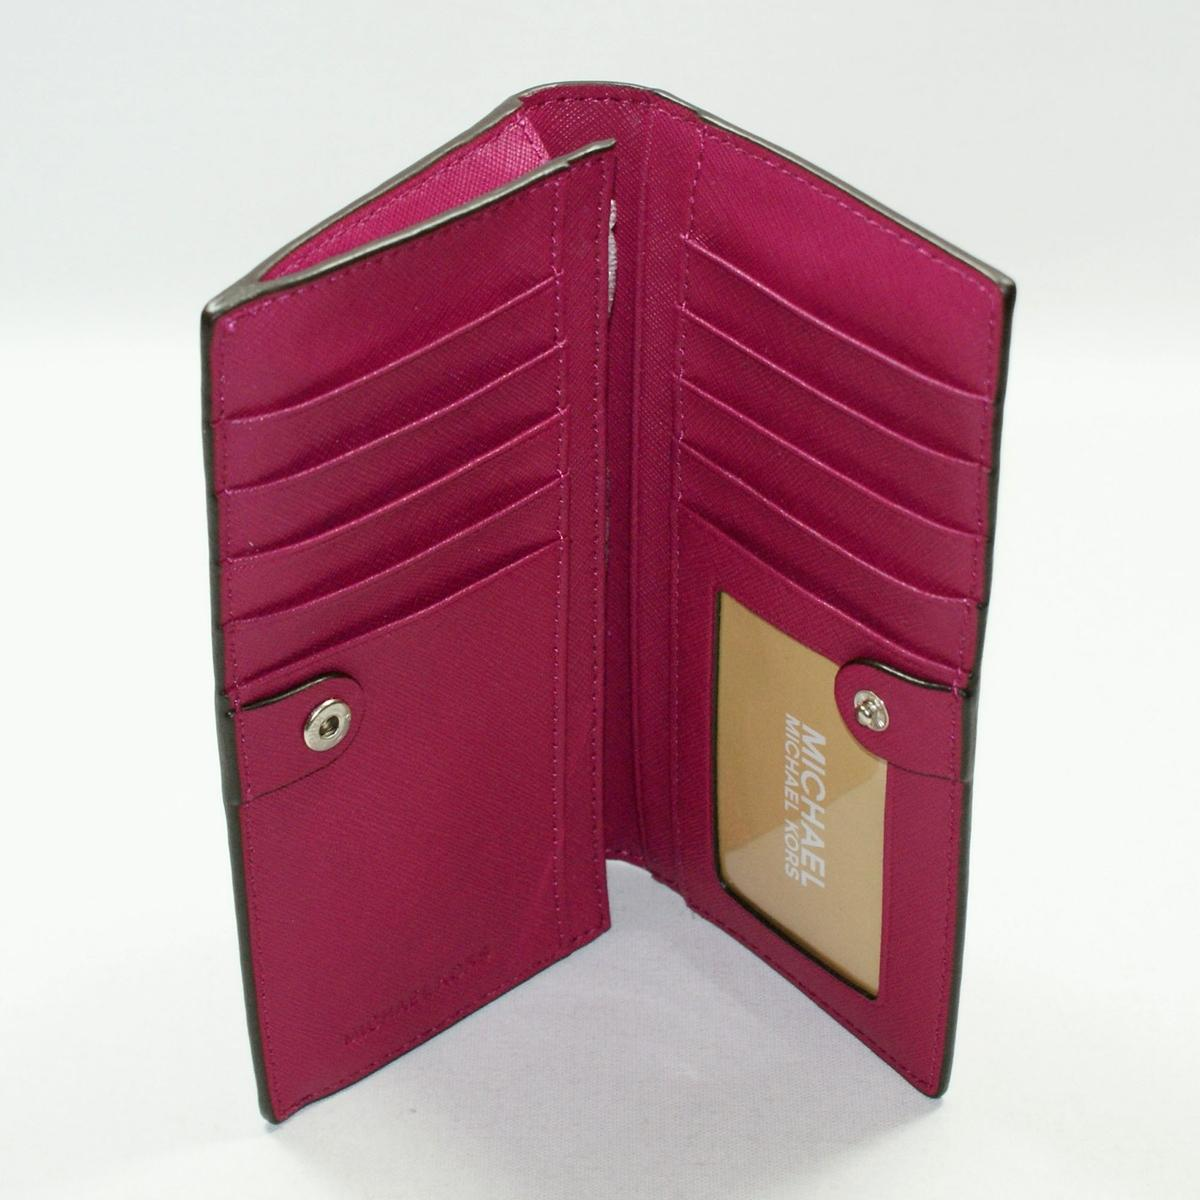 4e0d6bd38124 Home · Michael Kors · Jet Set Travel Leather Slim Wallet/ Clutch Deep Pink.  CLICK THUMBNAIL TO ZOOM. Found ...